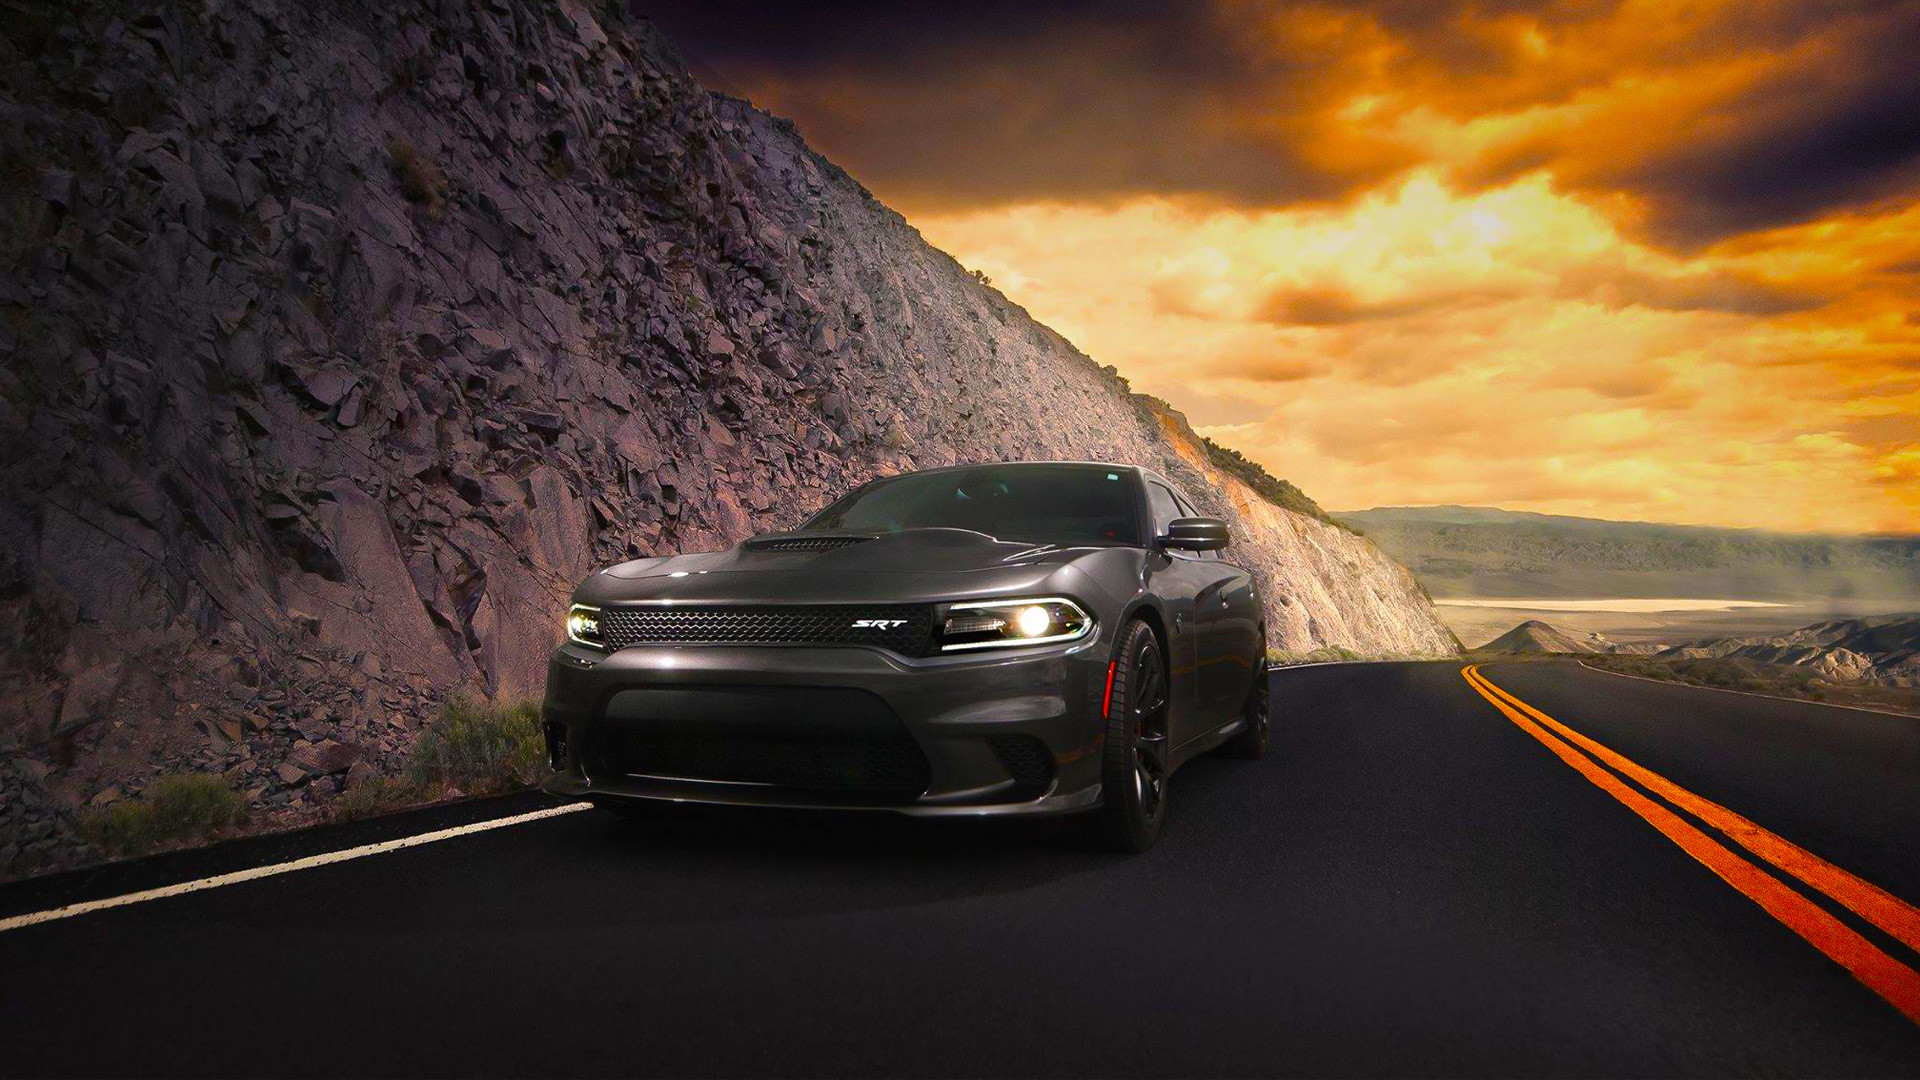 1920x1080 Dodge Charger SRT Hellcat 2015 Car HD Wallpapers HD Wallpapers